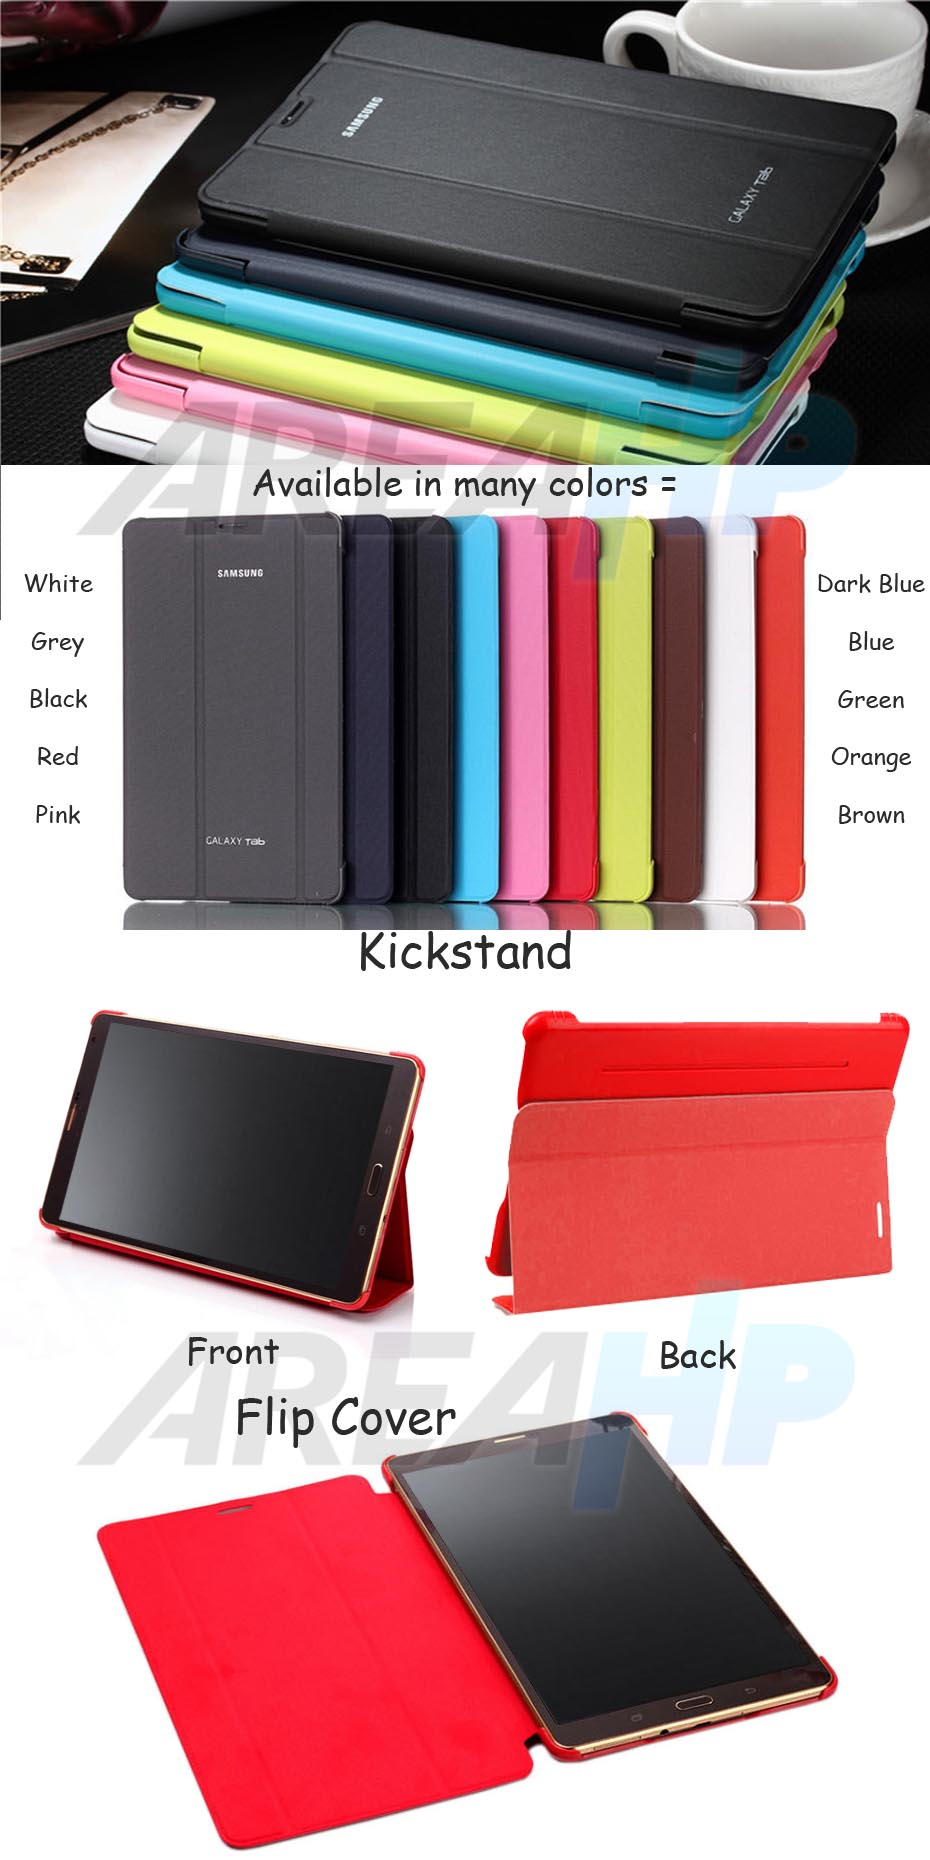 Book Cover Case for Samsung Galaxy Tab S 8.4 T700 Overview